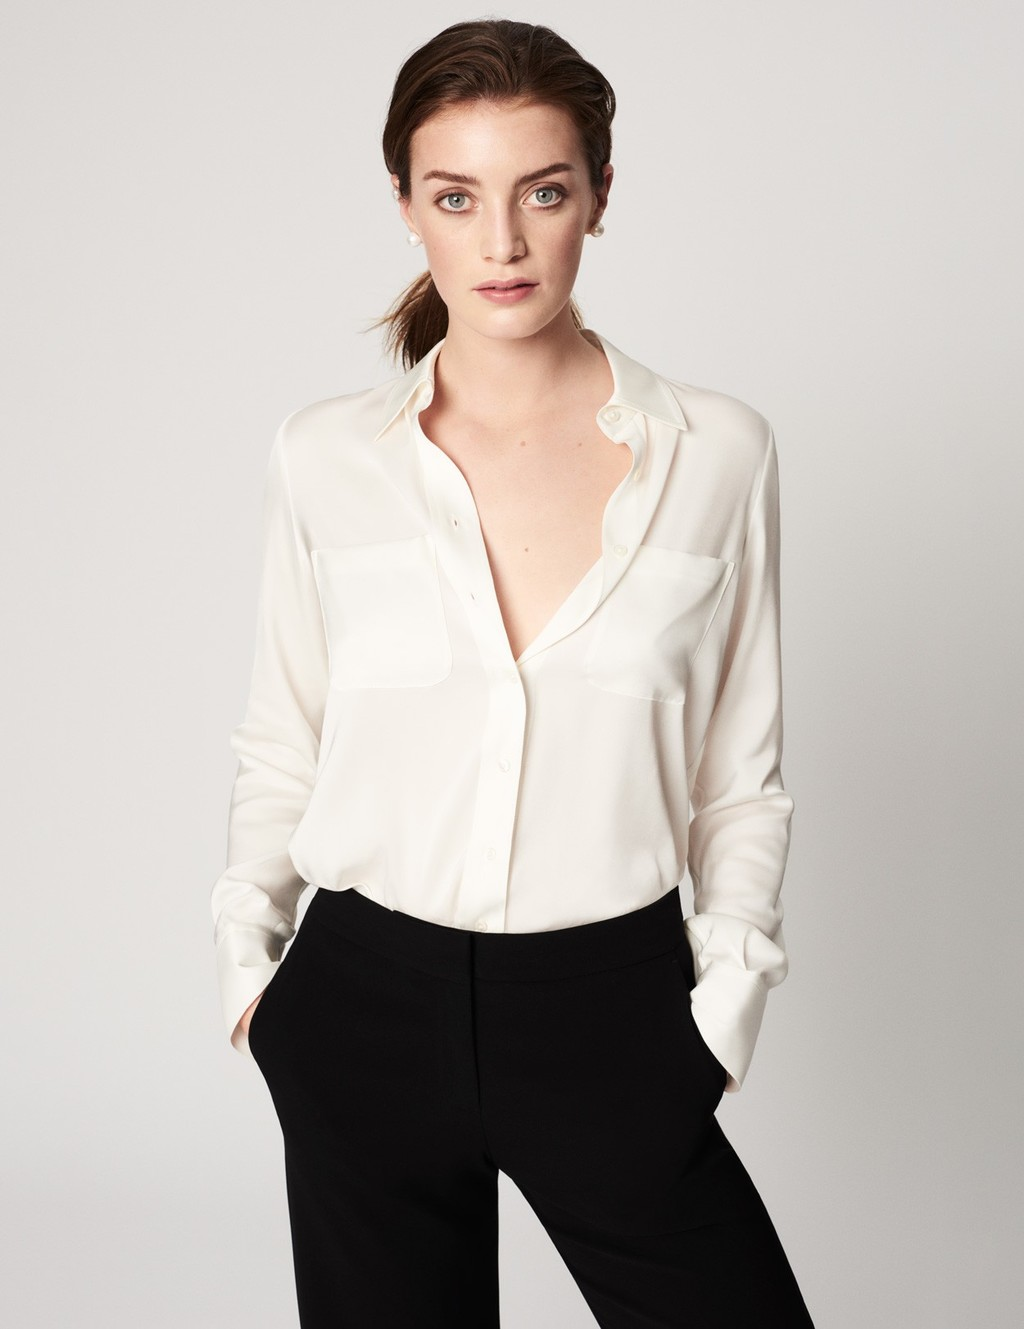 Silk Shirt - neckline: shirt collar/peter pan/zip with opening; pattern: plain; style: shirt; predominant colour: ivory/cream; occasions: work; length: standard; fibres: silk - 100%; fit: body skimming; sleeve length: long sleeve; sleeve style: standard; texture group: crepes; pattern type: fabric; season: s/s 2016; wardrobe: basic